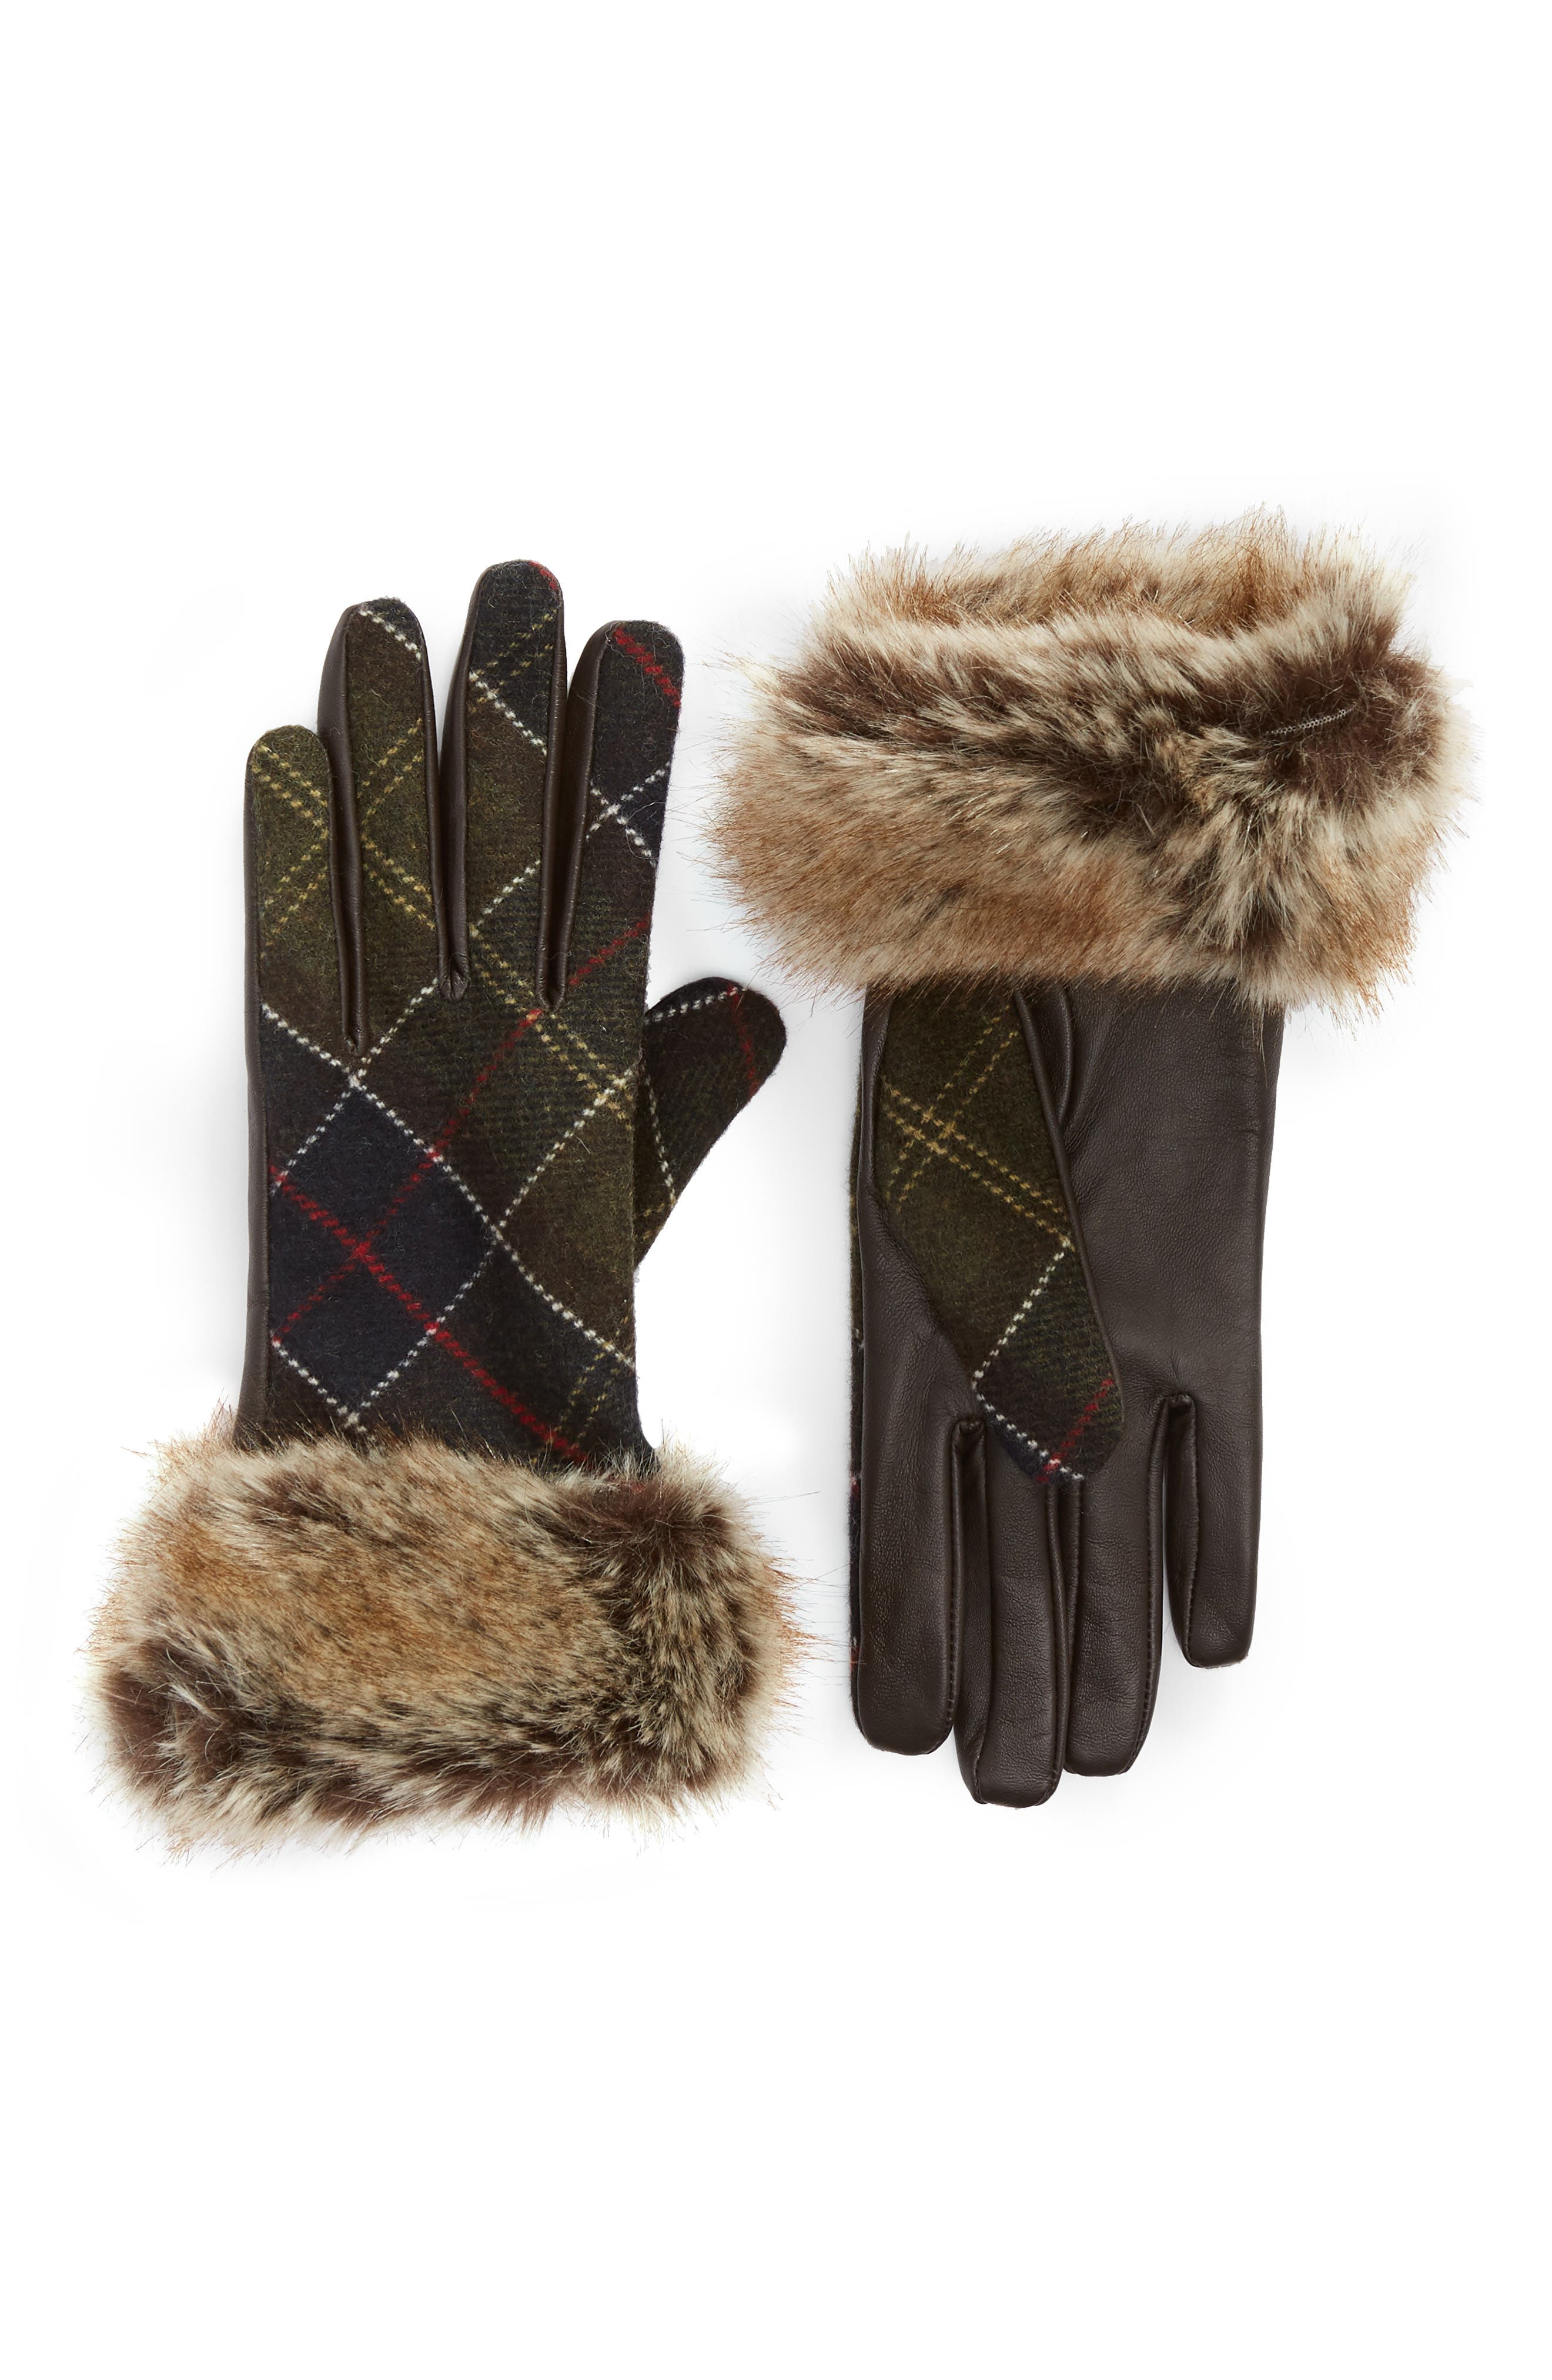 Linton Leather & Wool Gloves,                         Main,                         color, 230